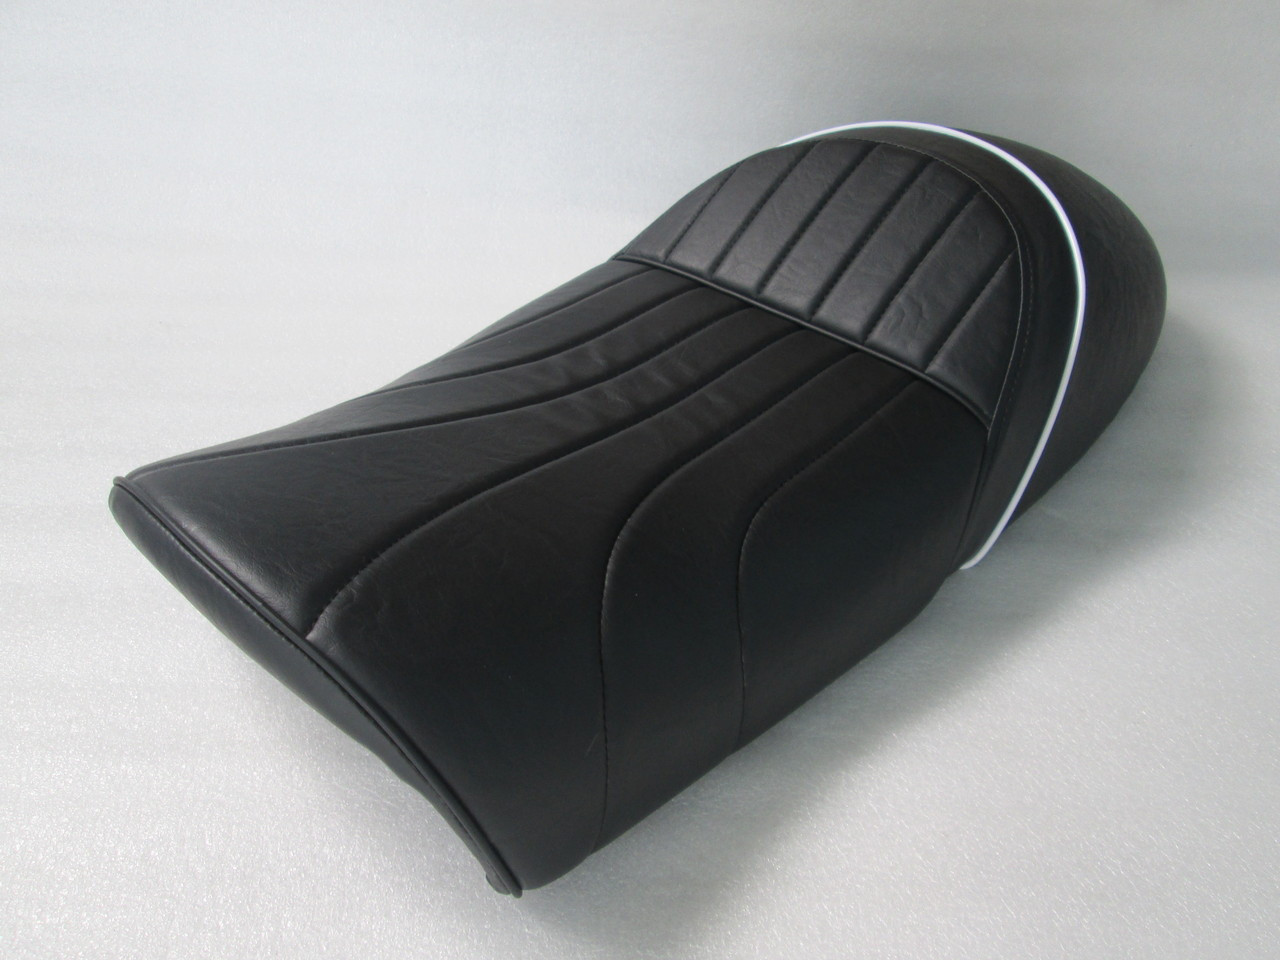 BMW Air Head AIRHEAD R80 R series R80RT complete seat with metal pan plate #4176